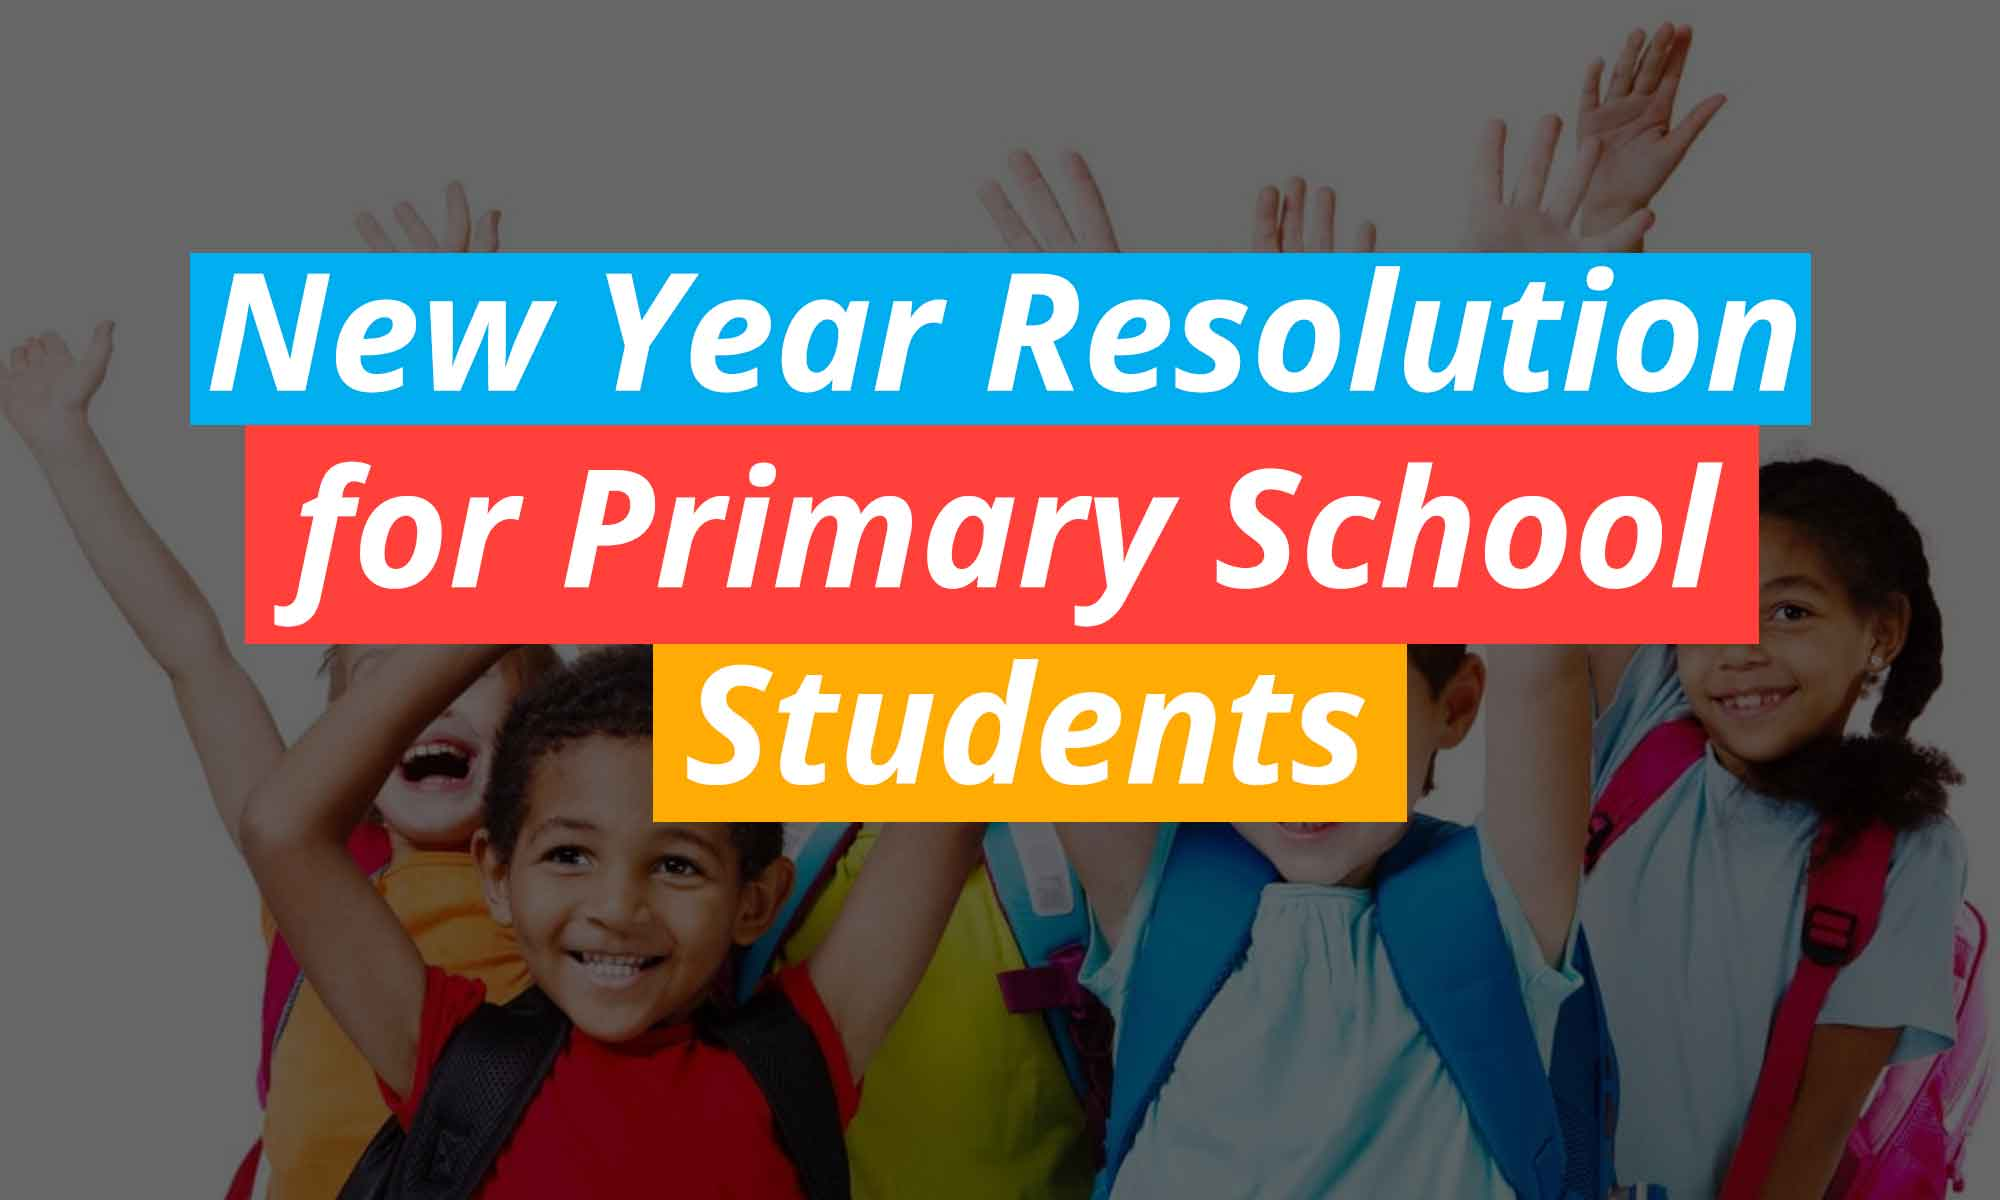 New Year Resolution for Primary School Students